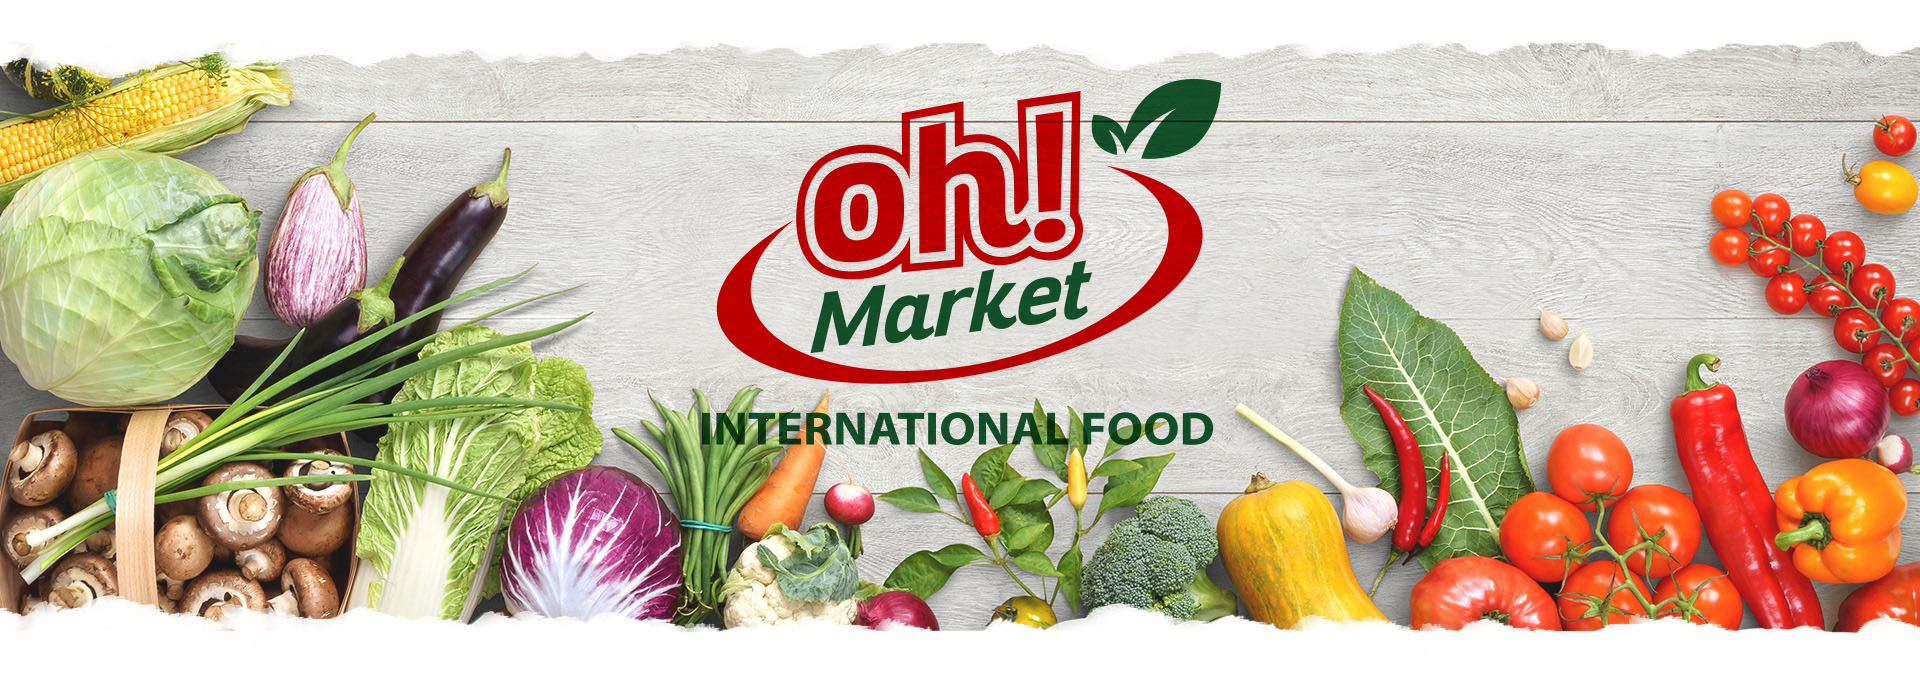 Oh! Market International Food